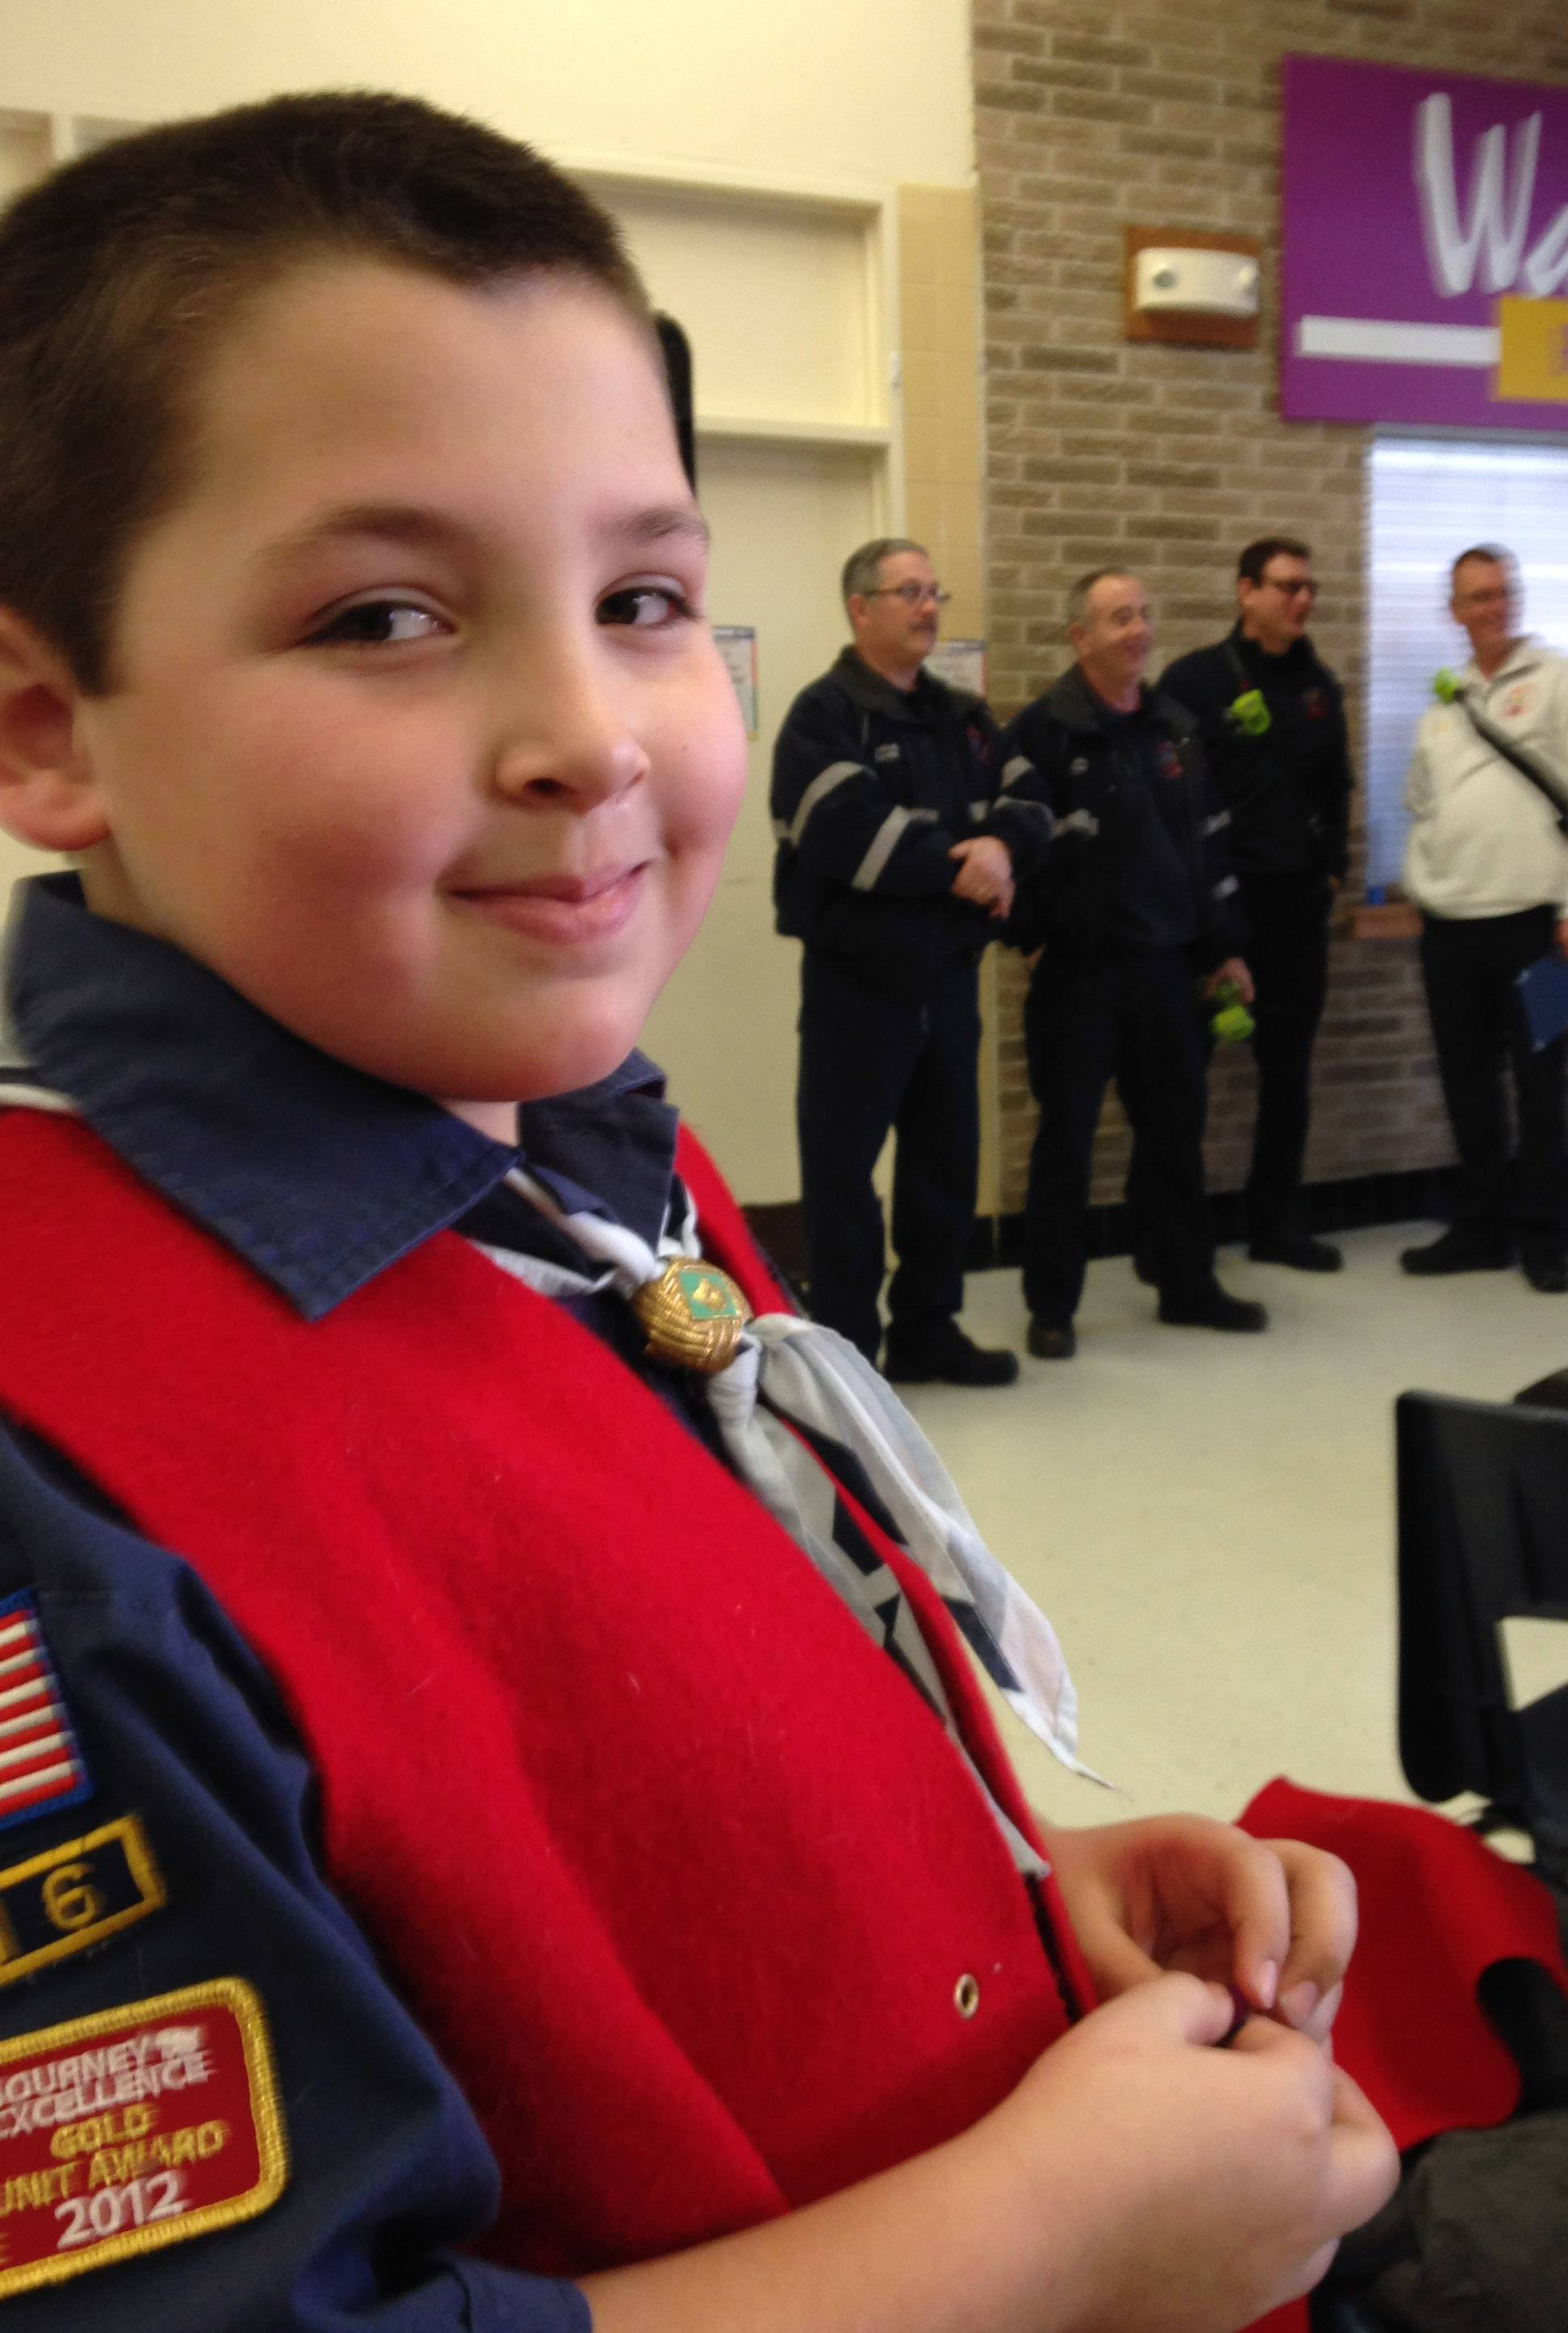 Joey Scianna, 8, of Island Lake.